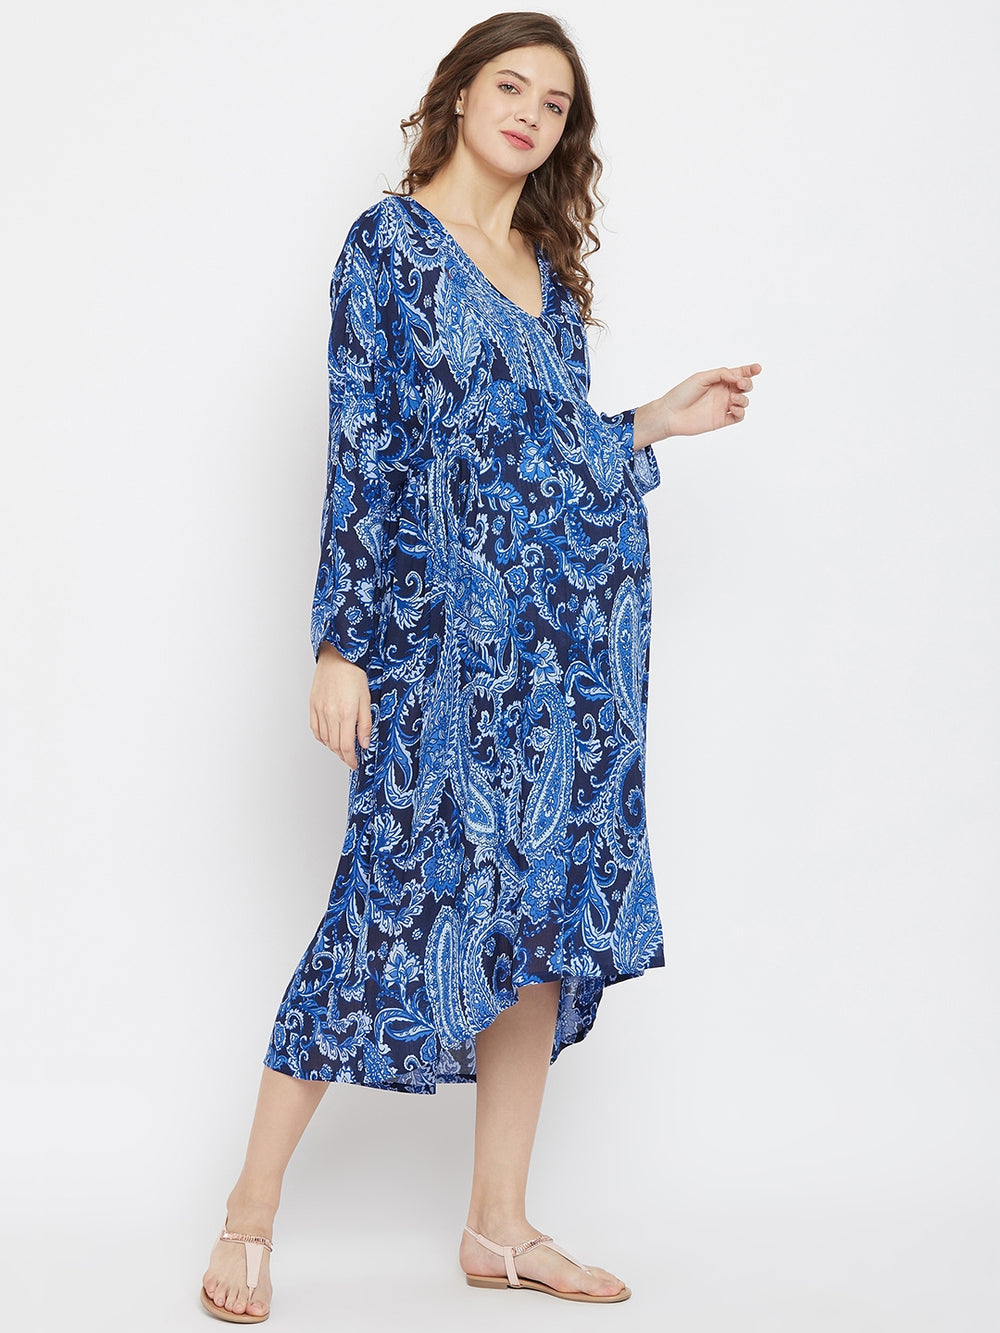 Cobalt Blue Paisleys Maternity and Feeding Dress